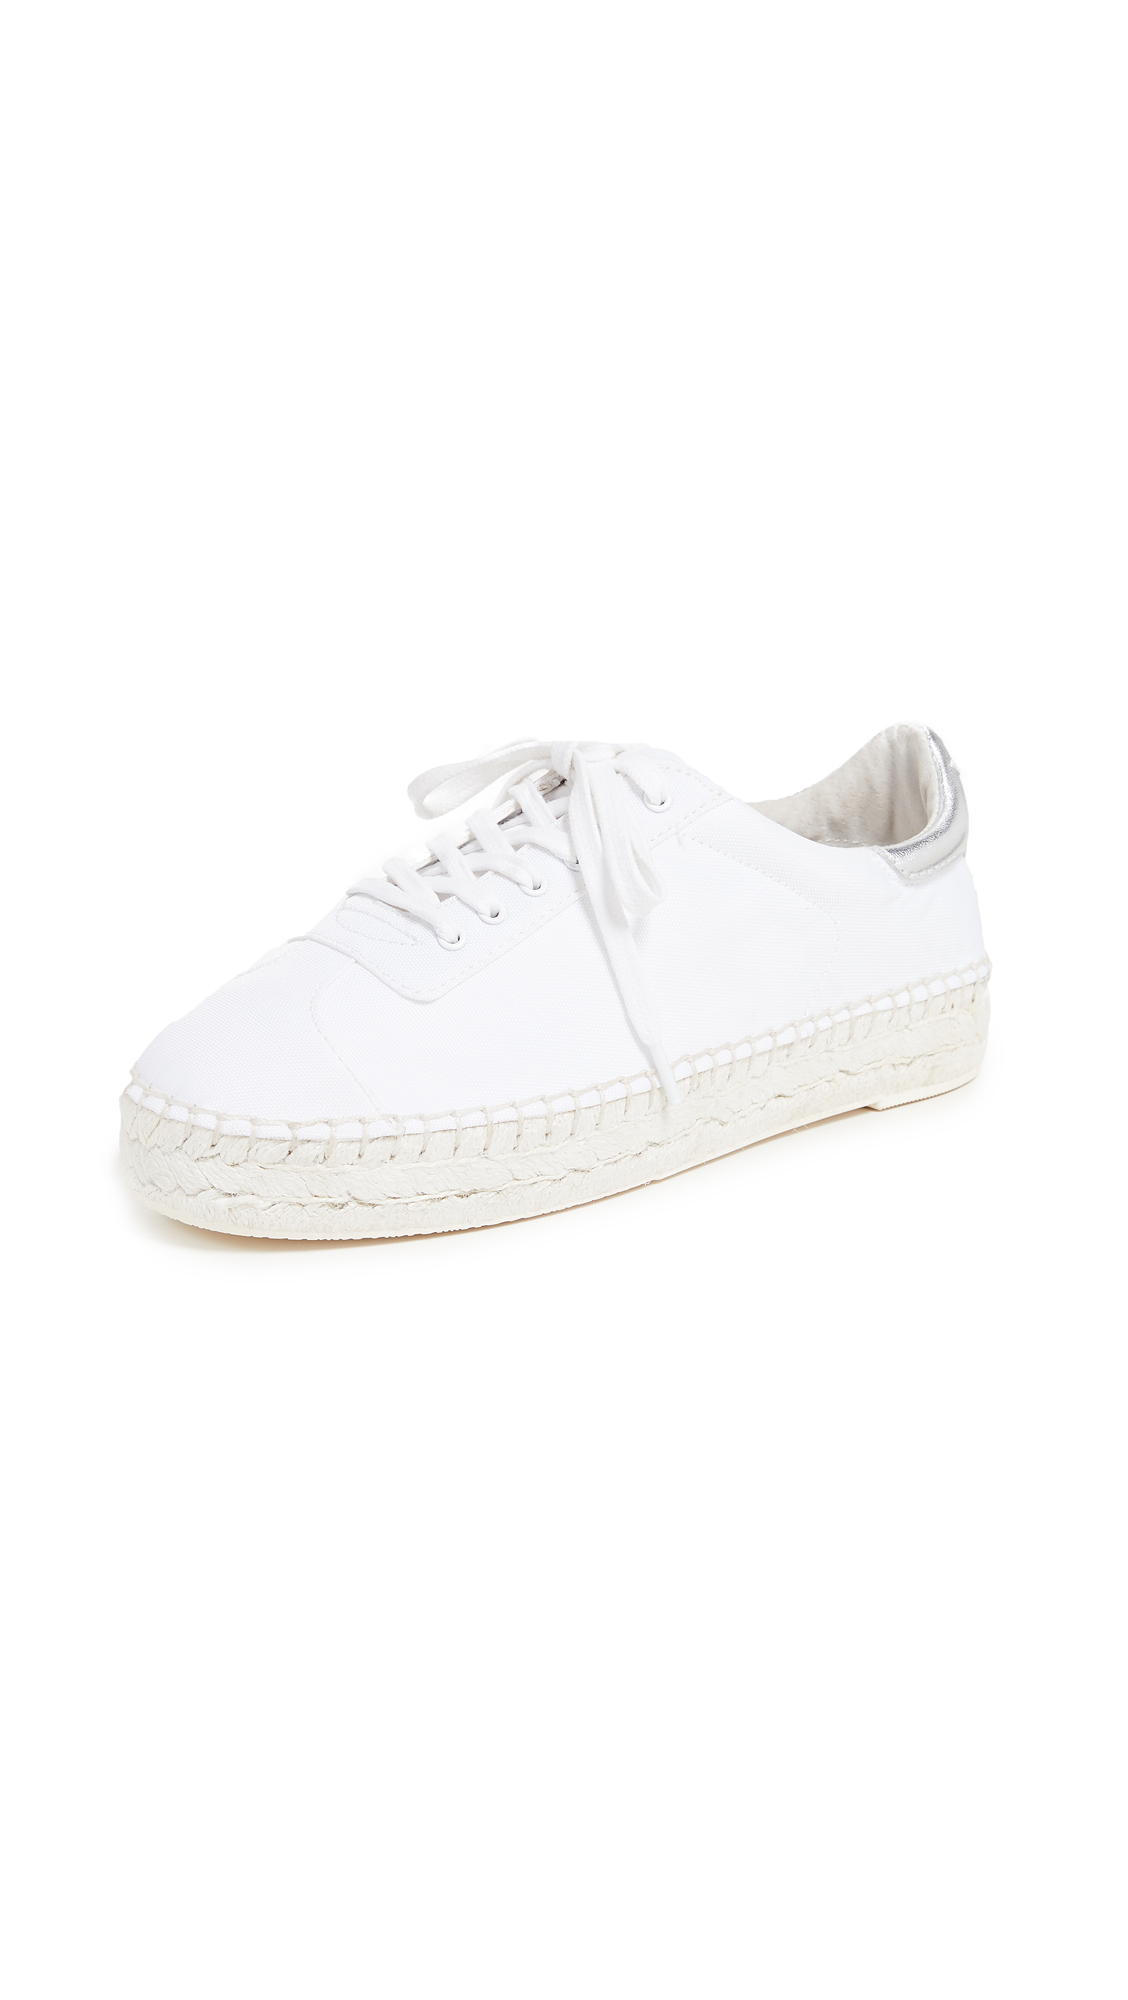 KENDALL + KYLIE James Espadrille Sneakers - White